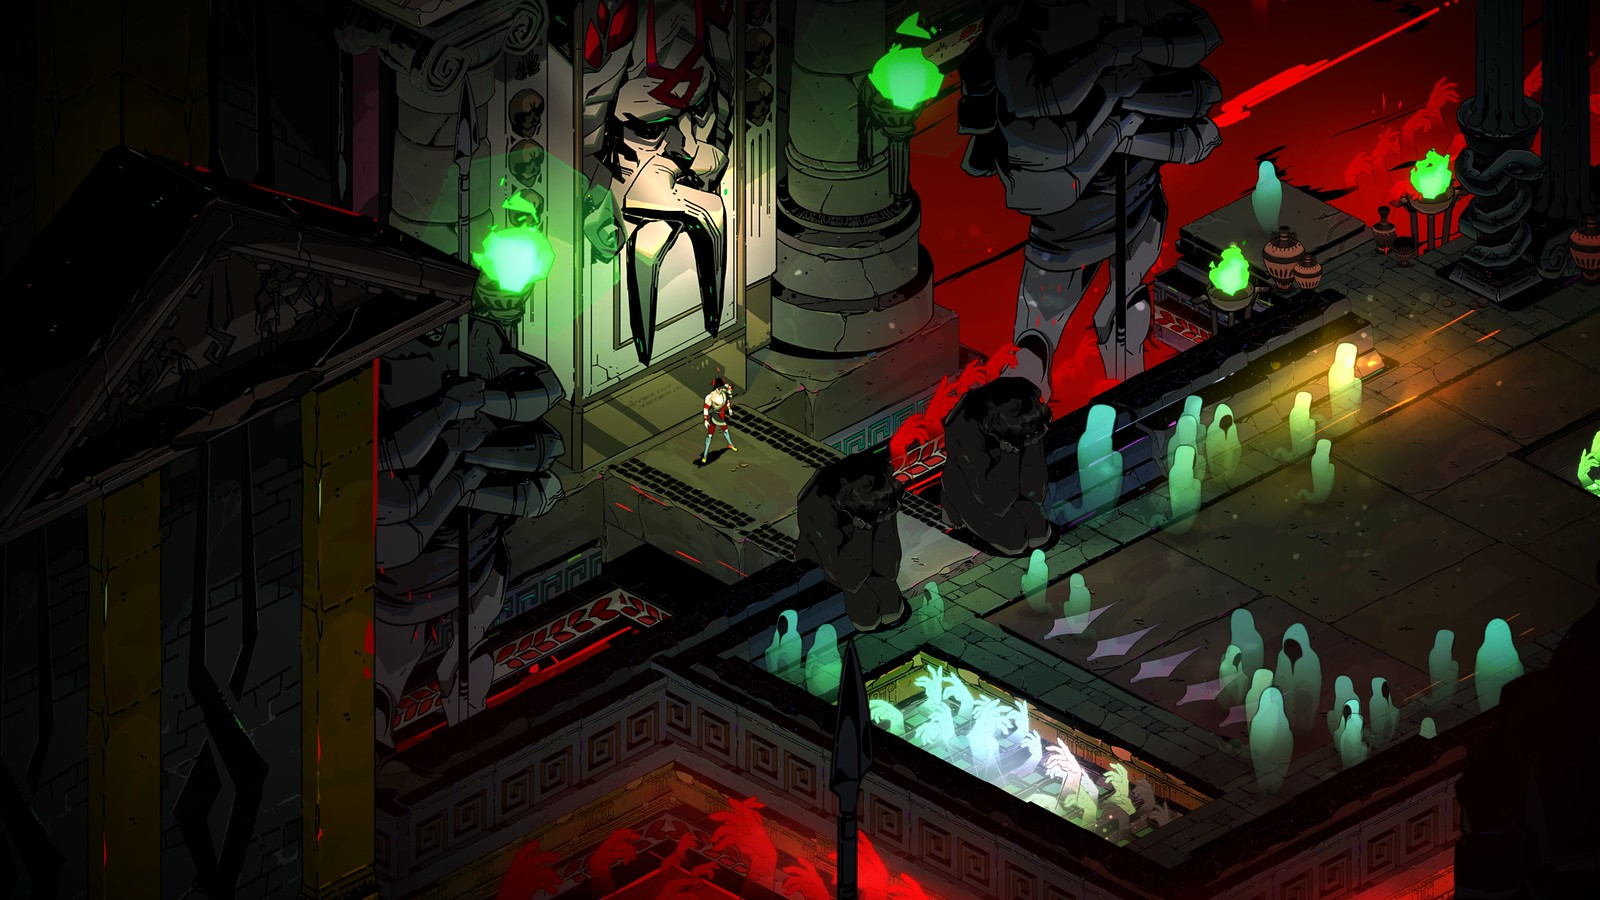 The origins of Hades, out next week on PS5, PS4 – PlayStation.Blog